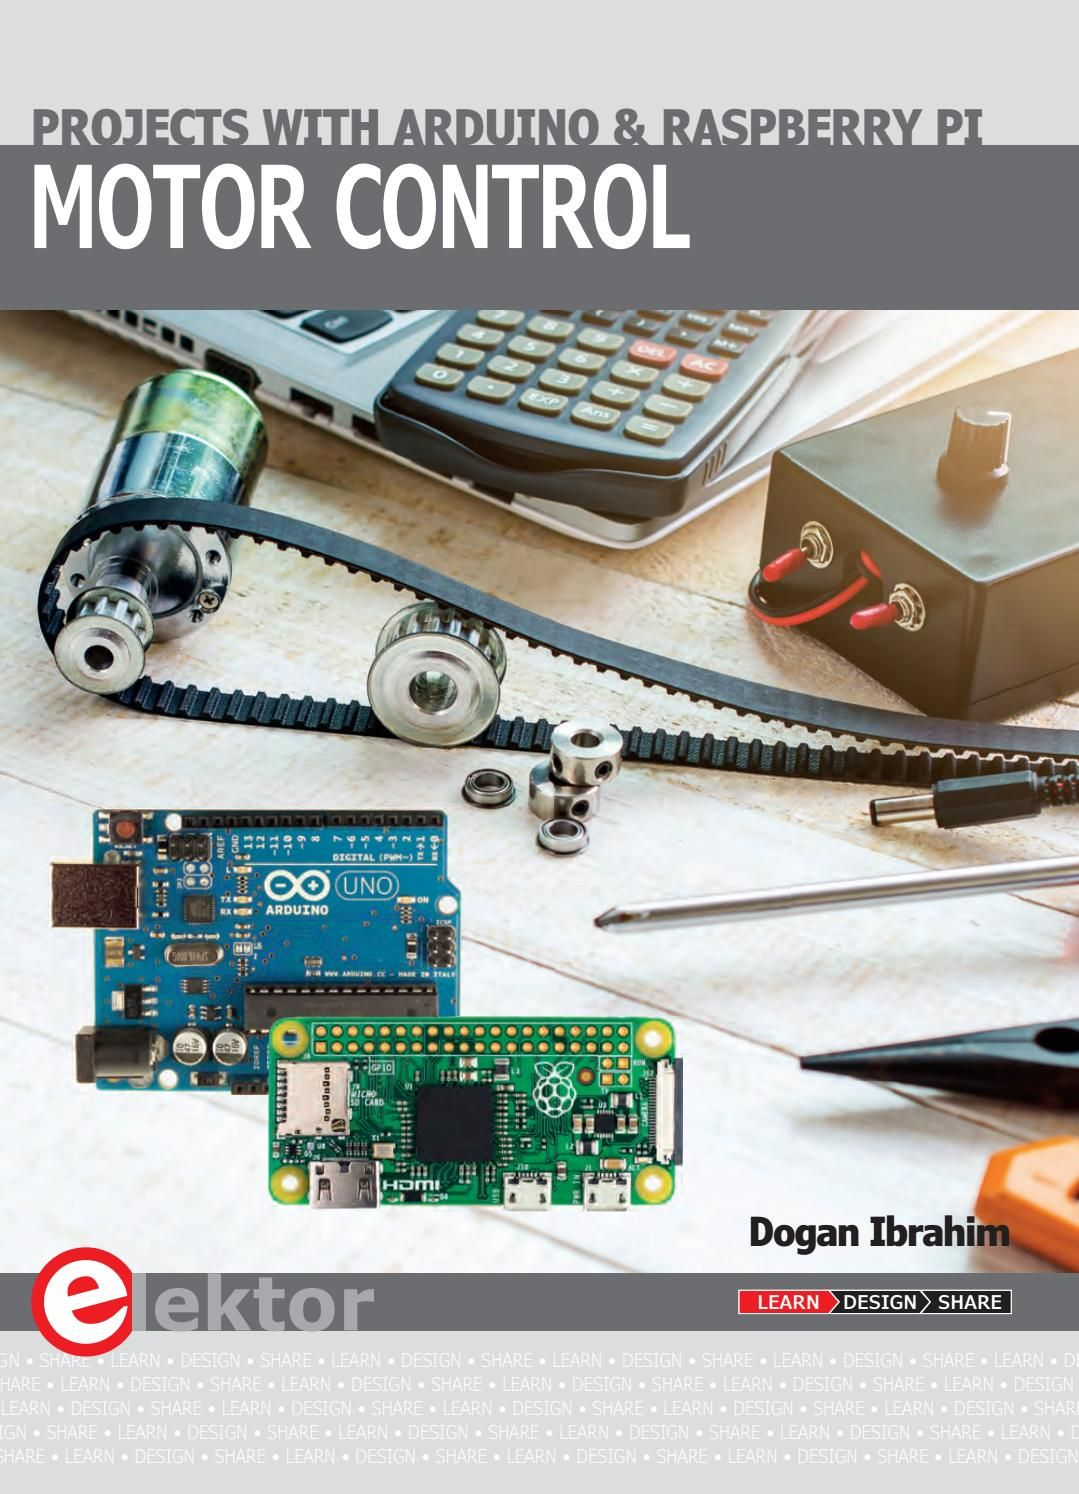 Motor Control Projects With Arduino And Raspberry Pi This Is The Project Books To Learn Electronics On Learning About